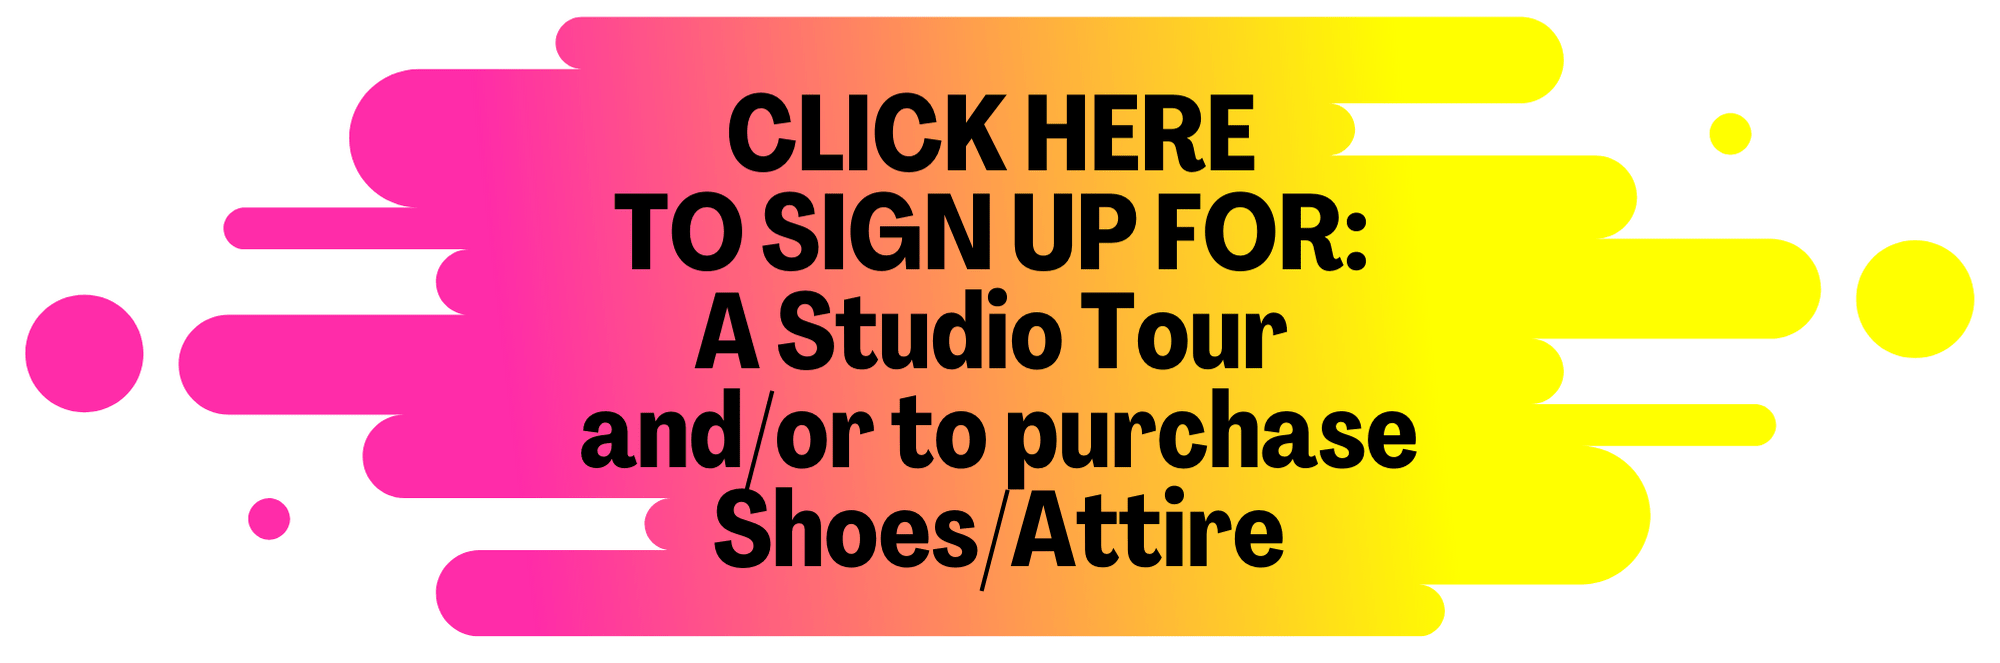 CLICK HERE TO SIGN UP FOR A TOURSHOESATTIRE